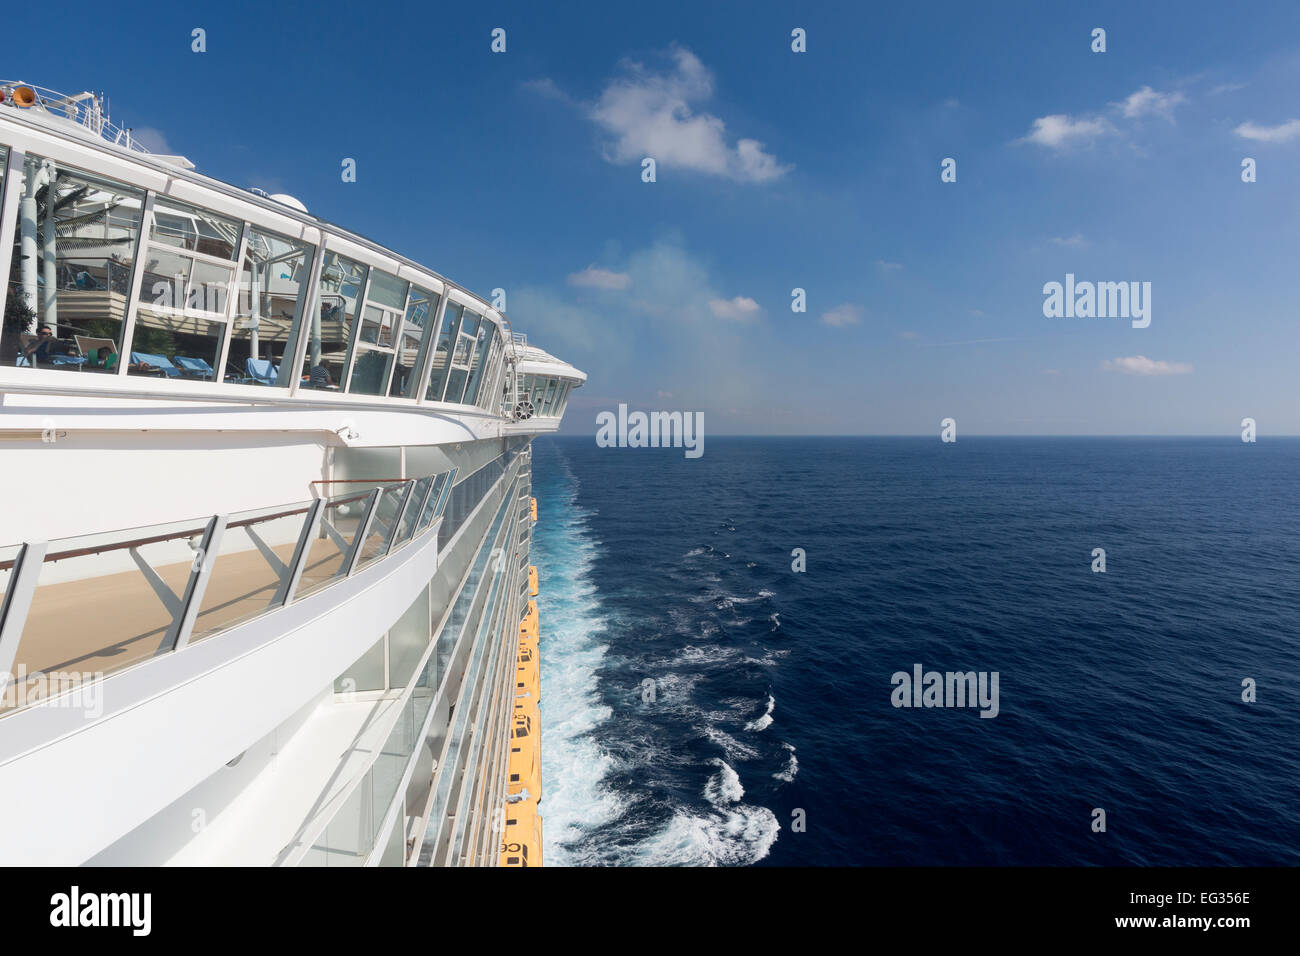 Oasis of the Seas in the Mediterranean Sea during her 2014-visit in Europe - Stock Image